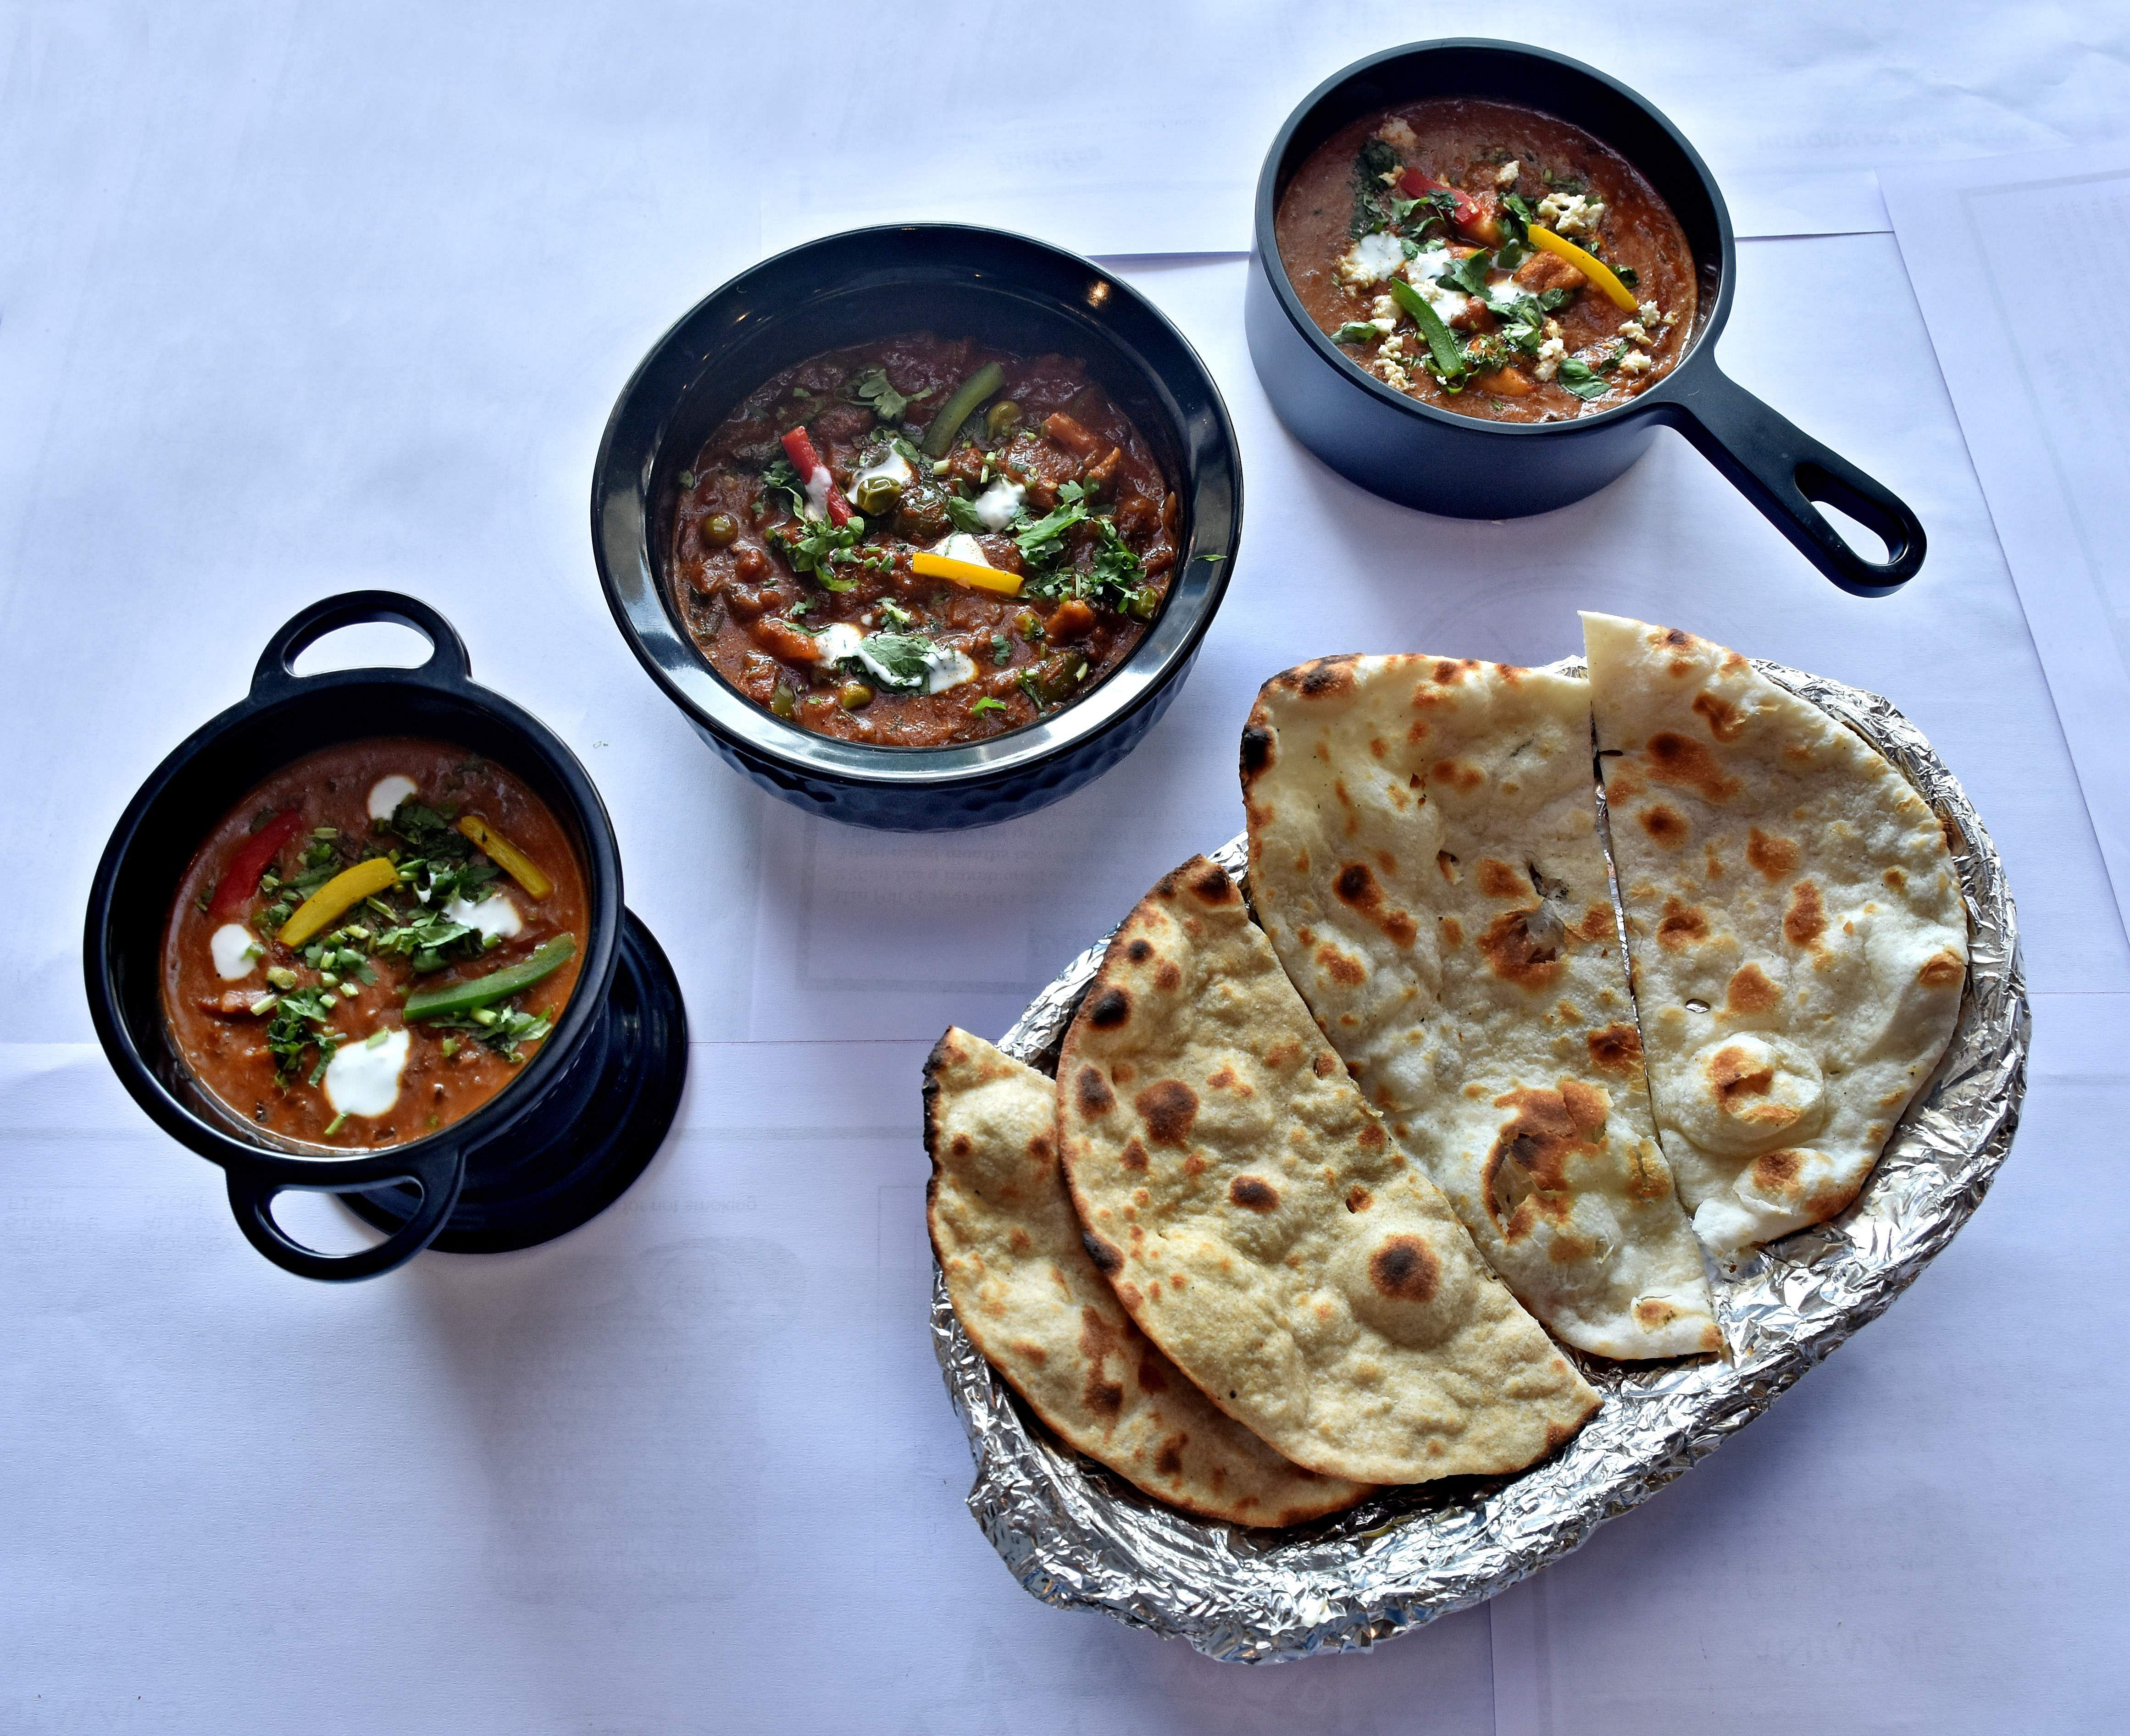 Dal makhani, paneer makhani and Penang curry with assorted breads